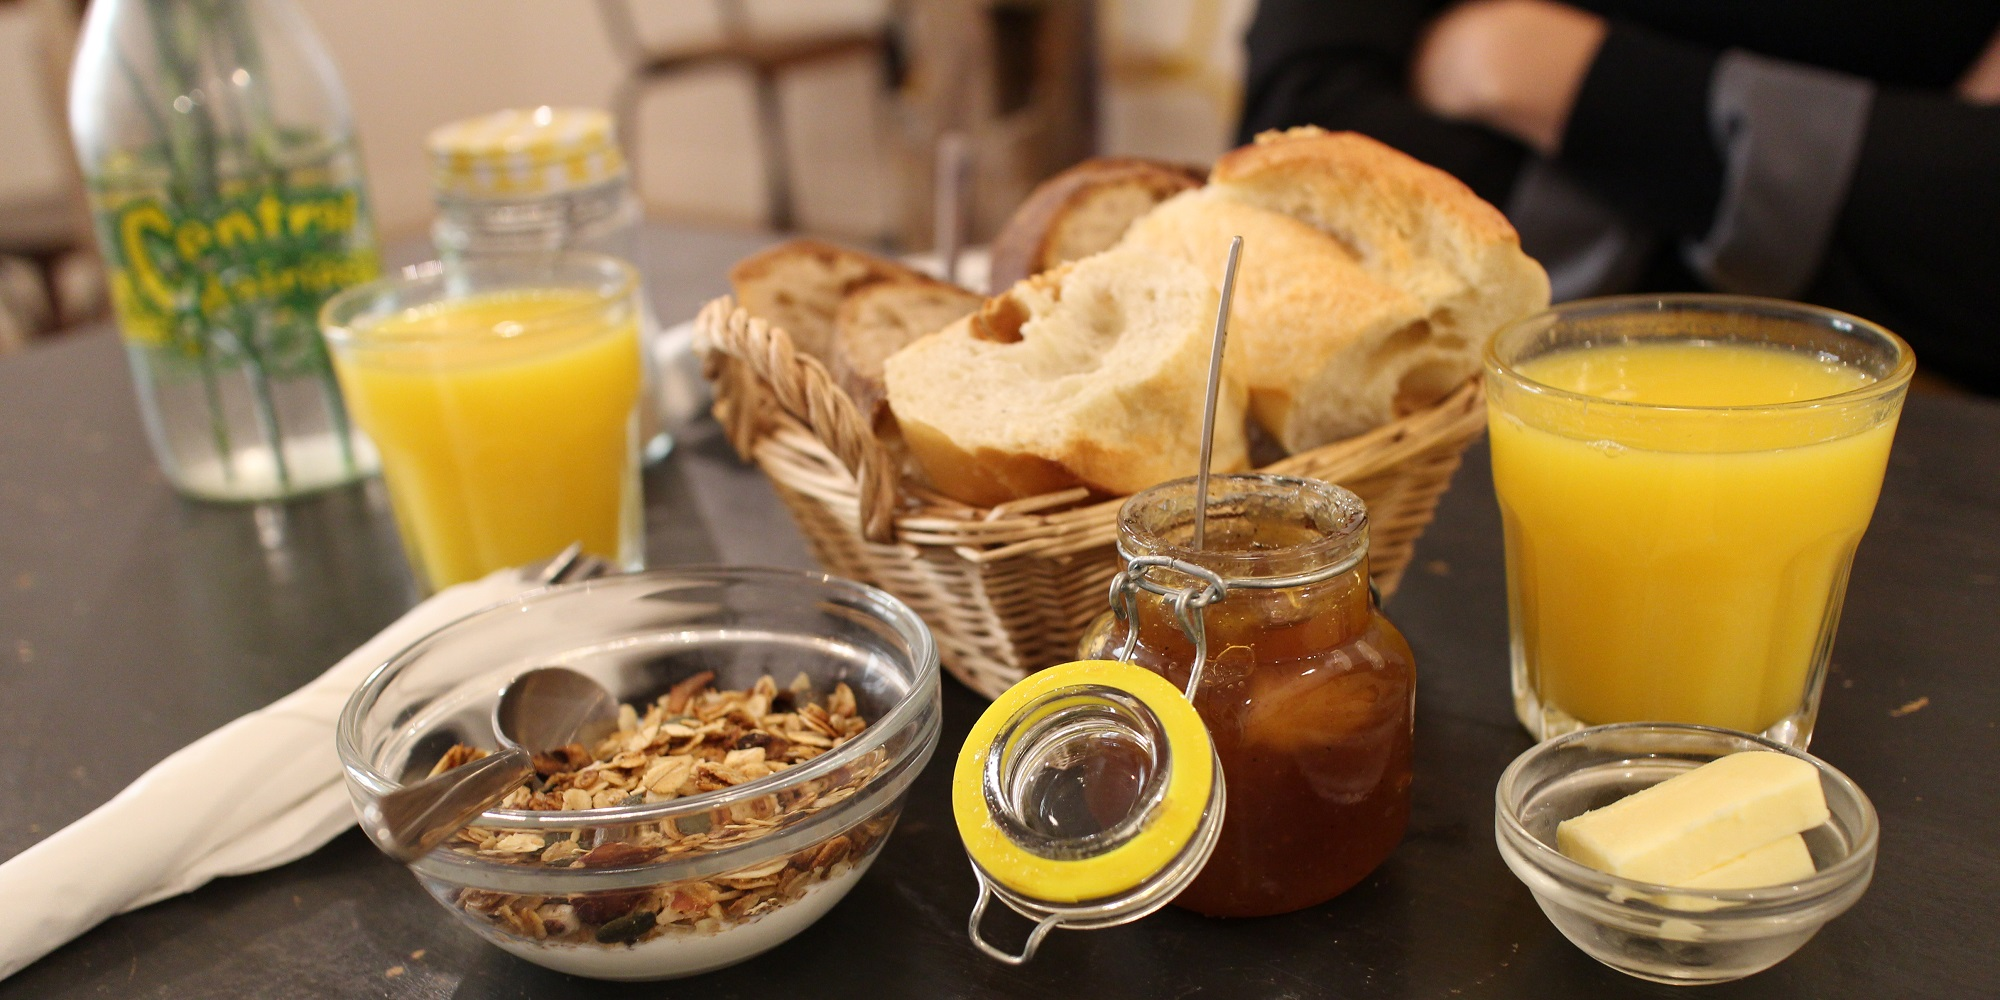 Brunch Coffee Spoune (75011 Paris 11ème)